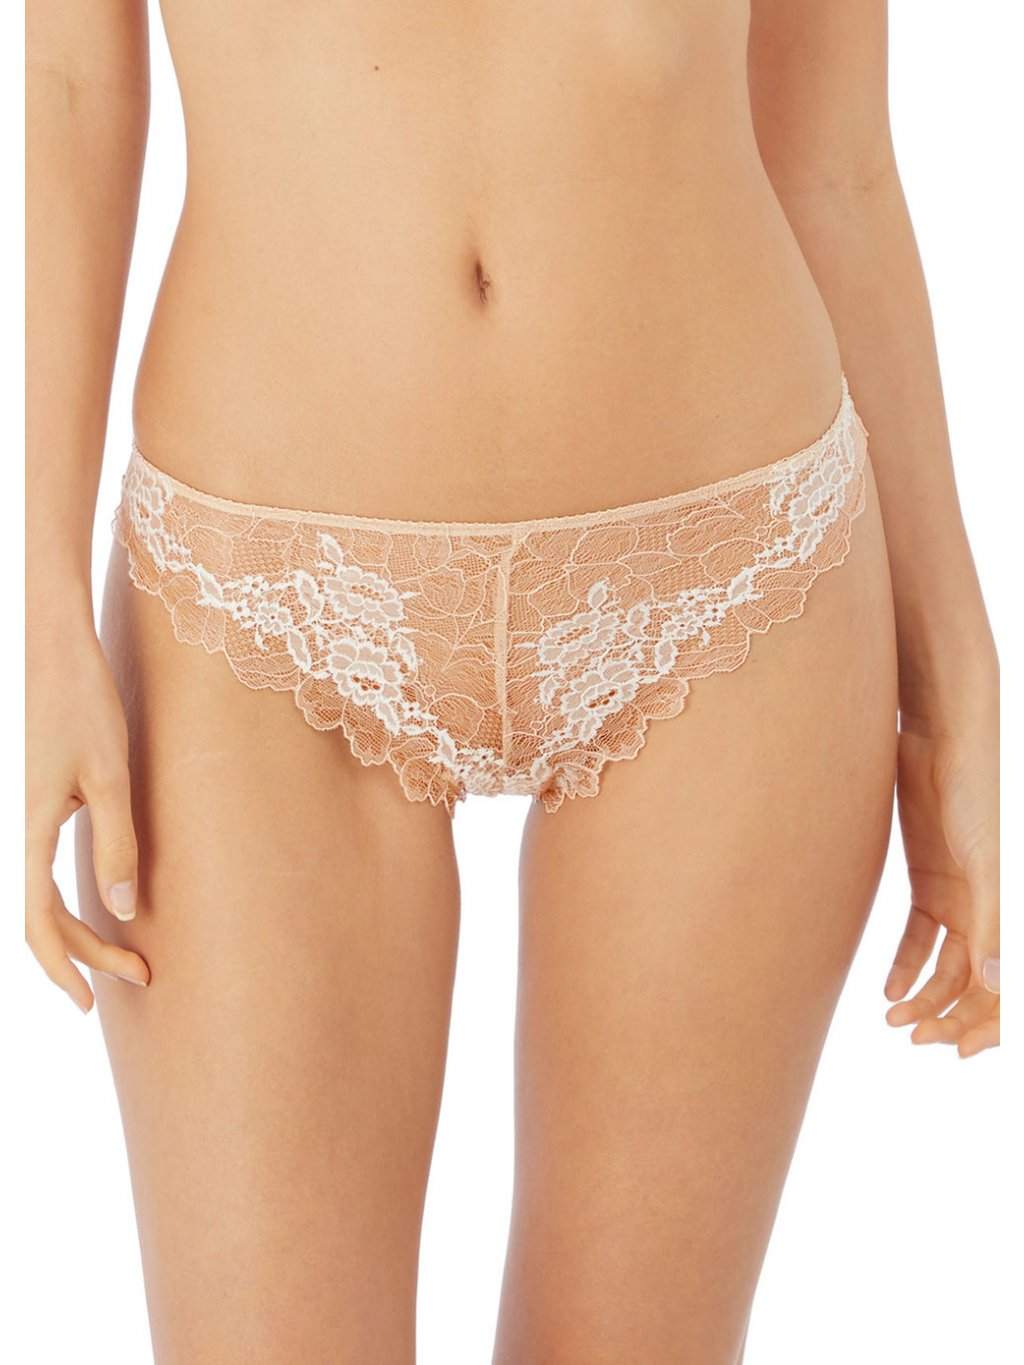 WE135007 CAC primary Wacoal Lingerie Lace Perfection Cafe Creme Tanga